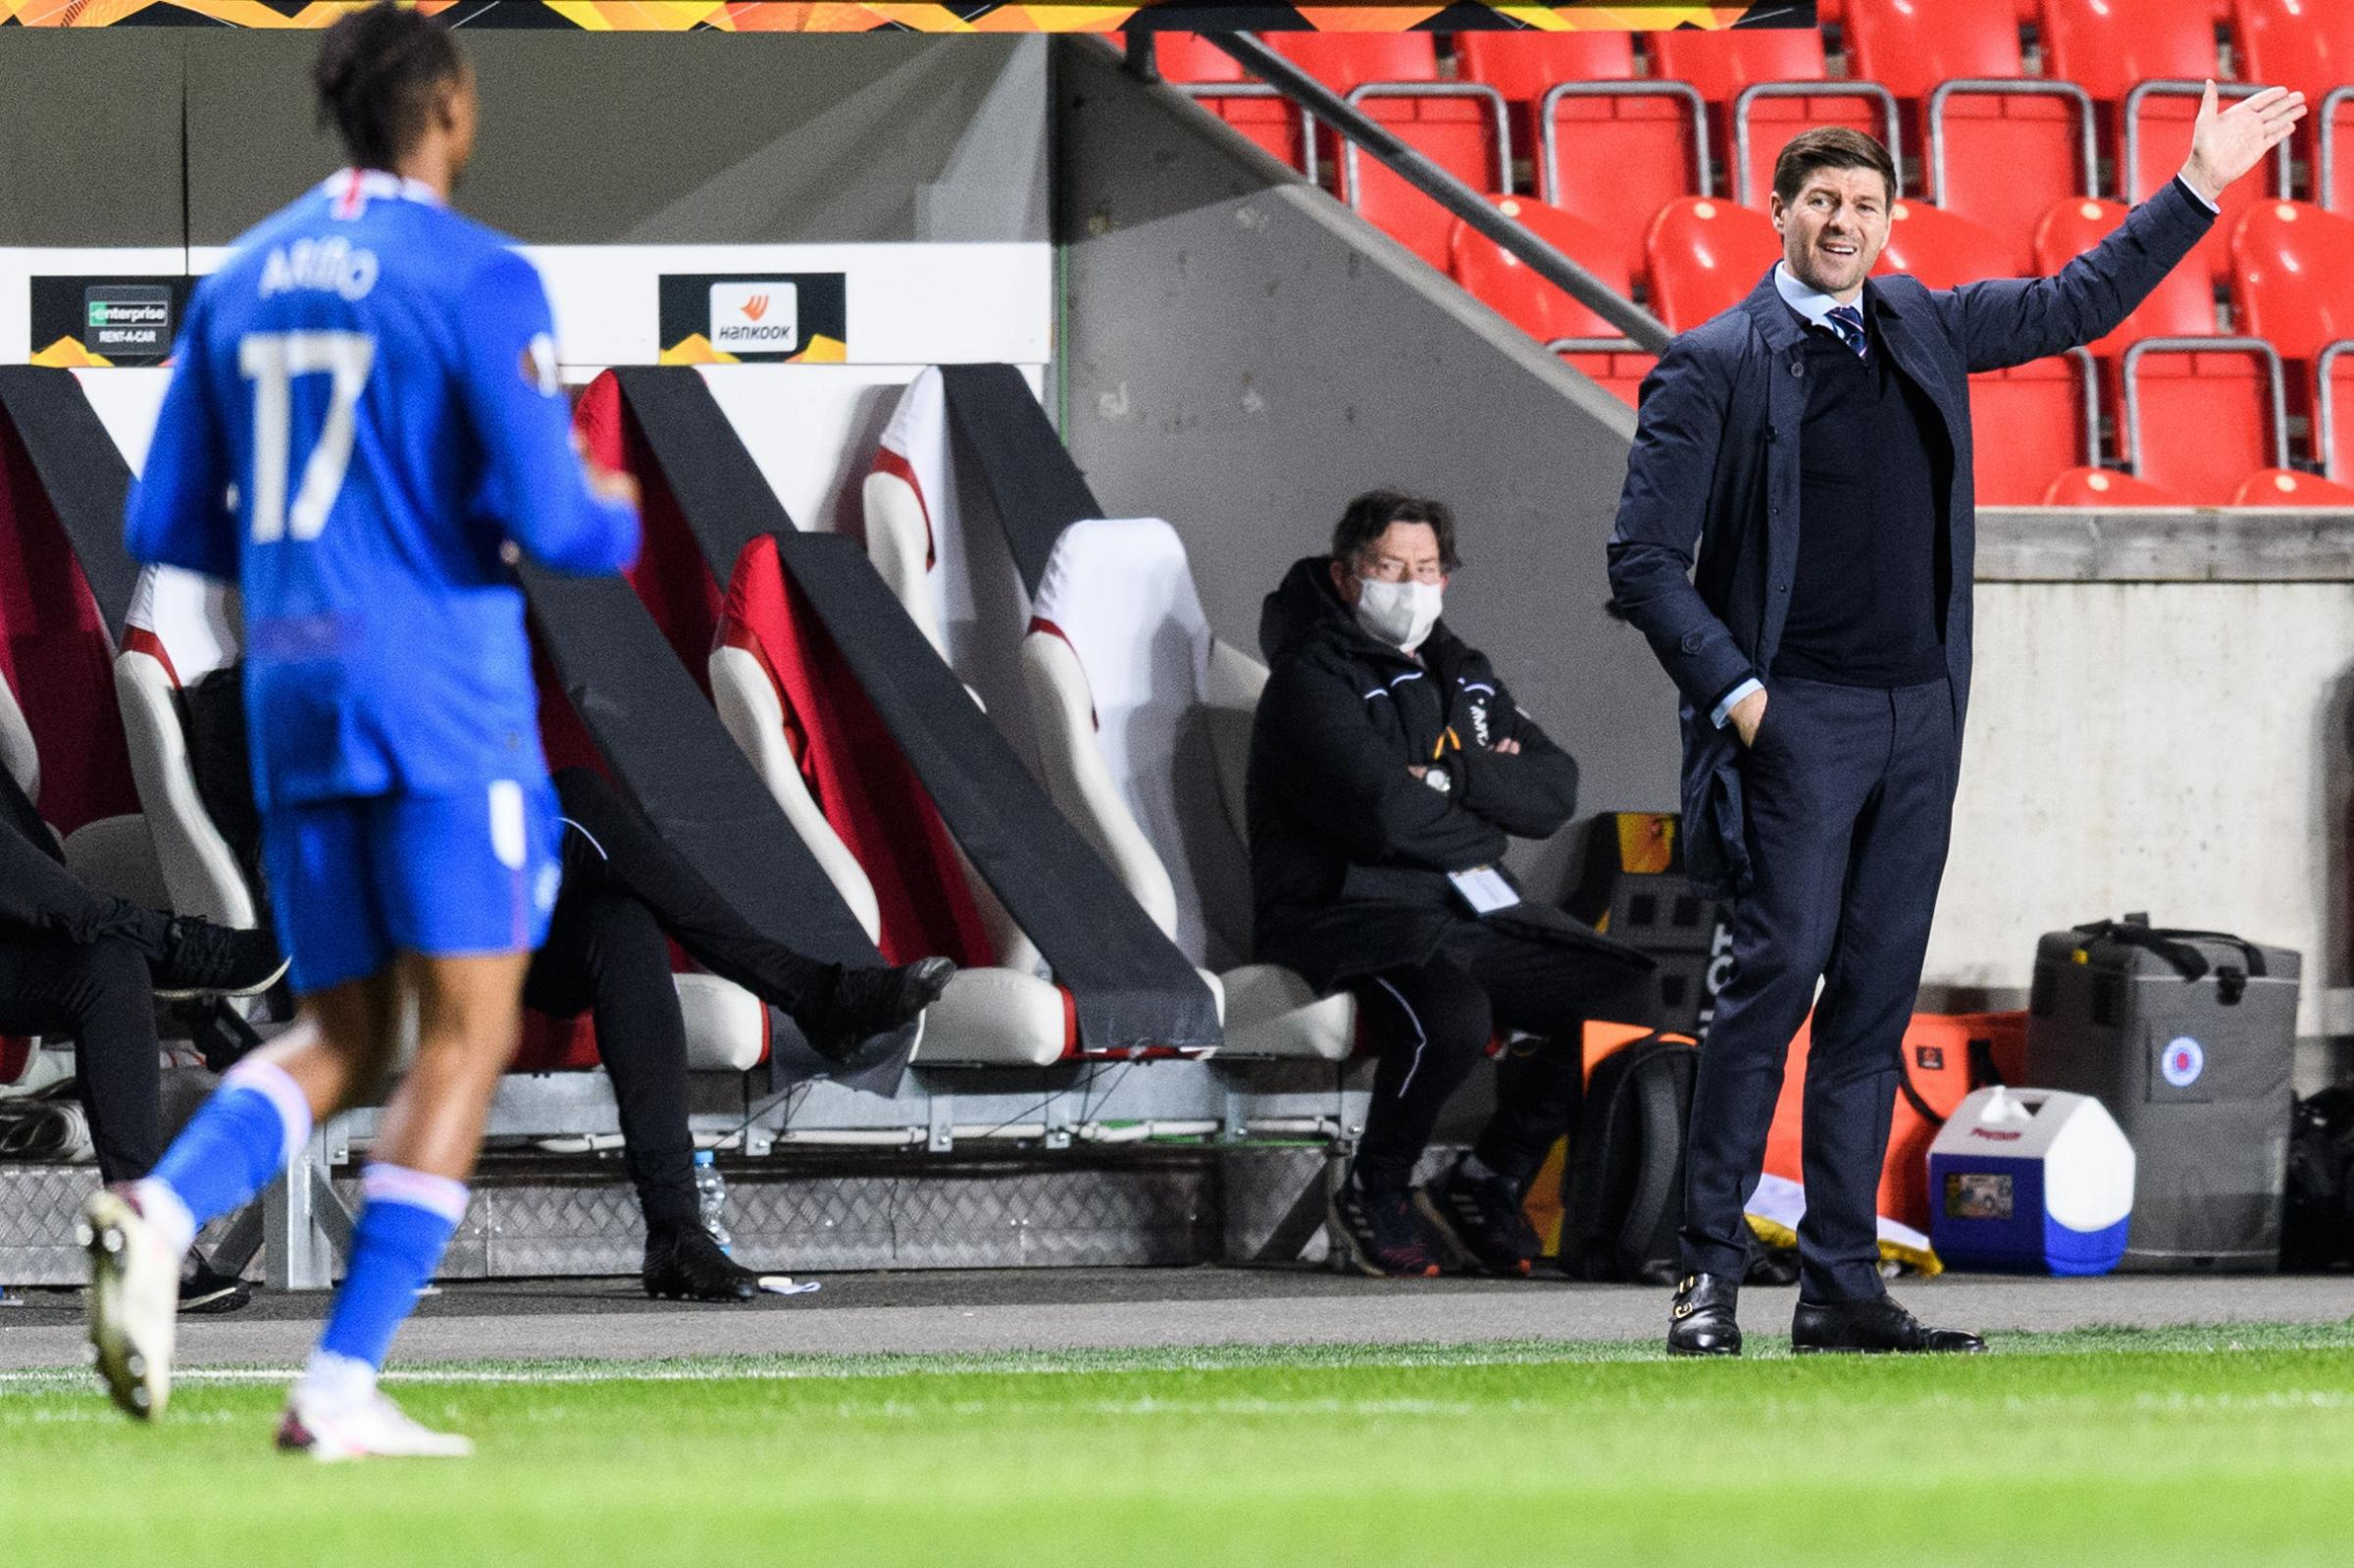 Rangers boss Steven Gerrard provides injury update after Slavia Prague win